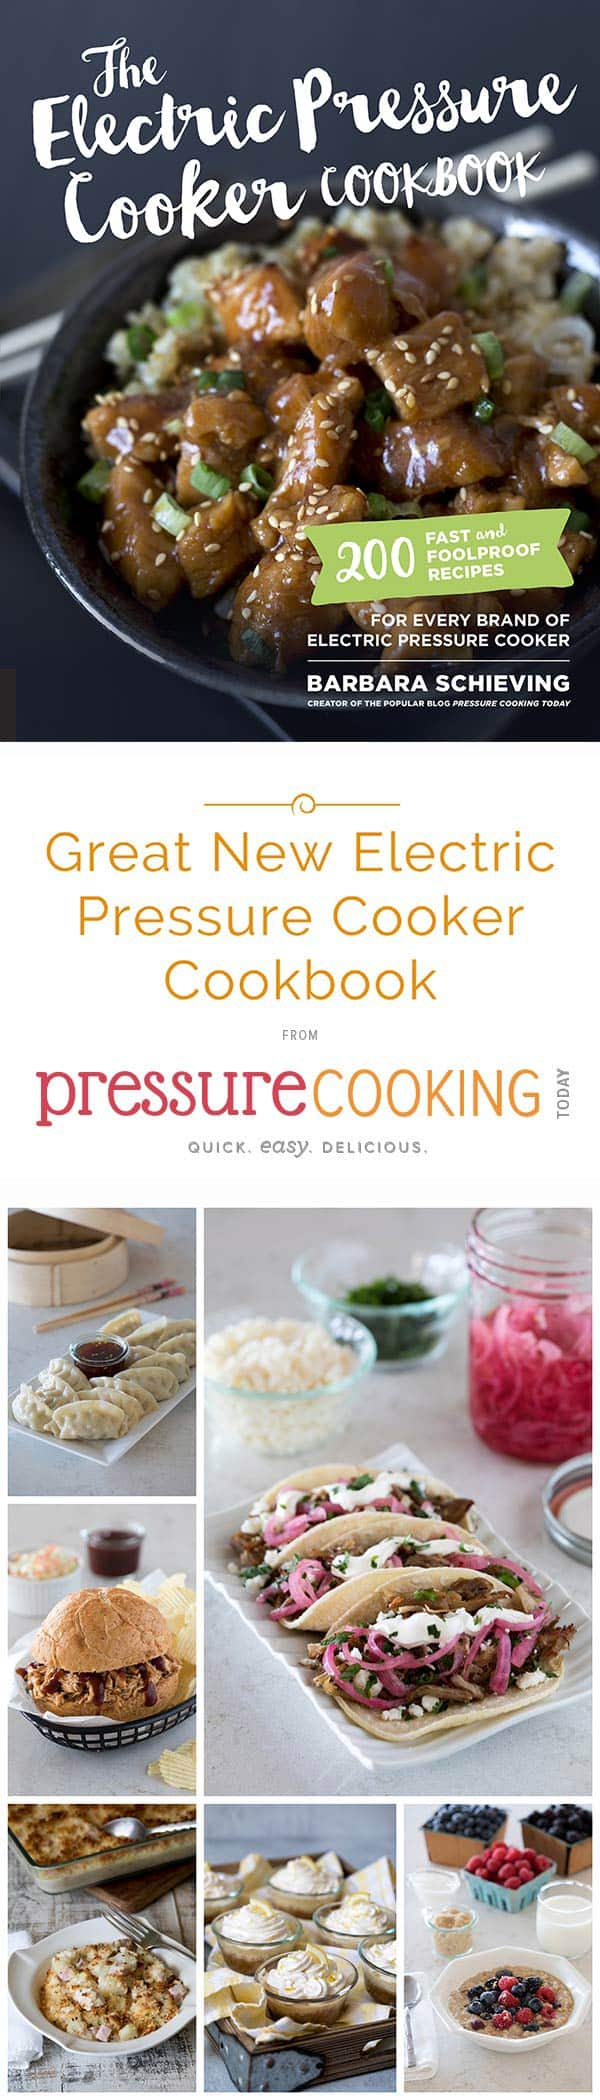 The Electric Pressure Cooker Cookbook - If you love the recipes on Pressure Cooking Today, you\'re going to love the cookbook. Thanks for pre-ordering it!